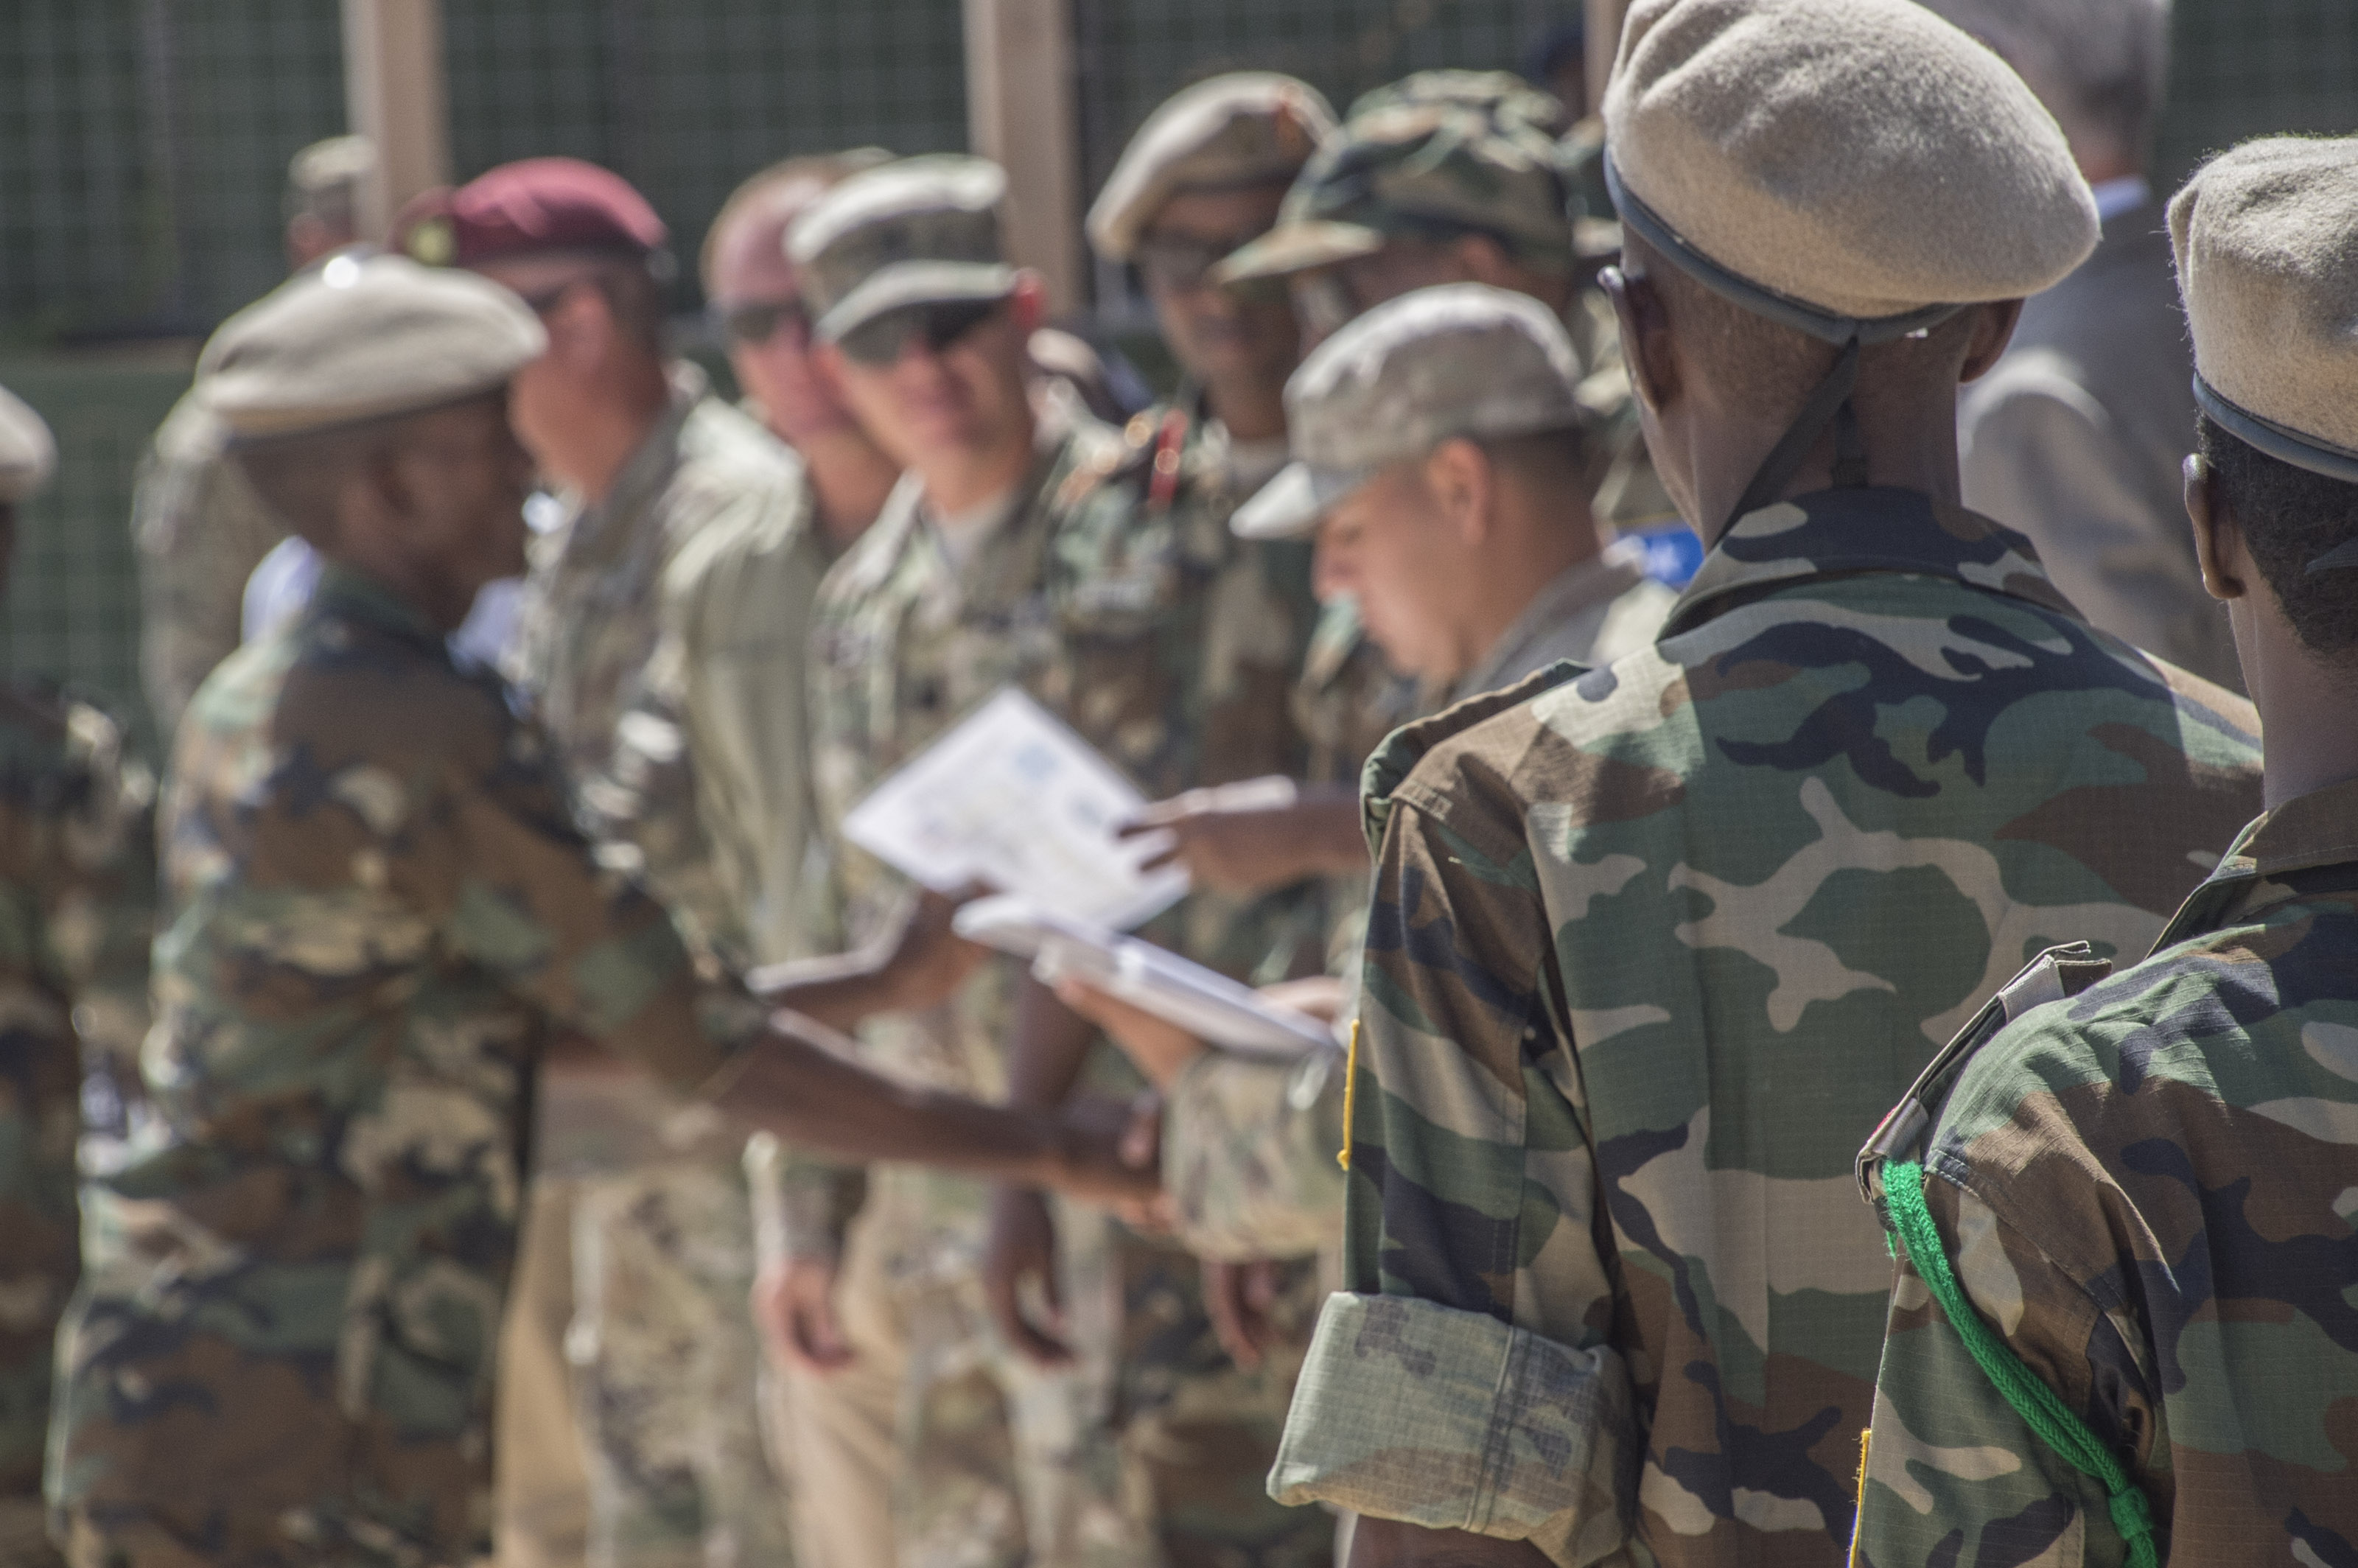 A Somali National Army soldier receives his certificate of completion from a logistics course taught by the U.S. Army's 101st Airborne Division May 24, 2017, in Mogadishu, Somalia. The six-week logistics course focused on various aspects of moving personnel, equipment and supplies. (U.S. Air National Guard photo by Tech. Sgt. Joe Harwood)